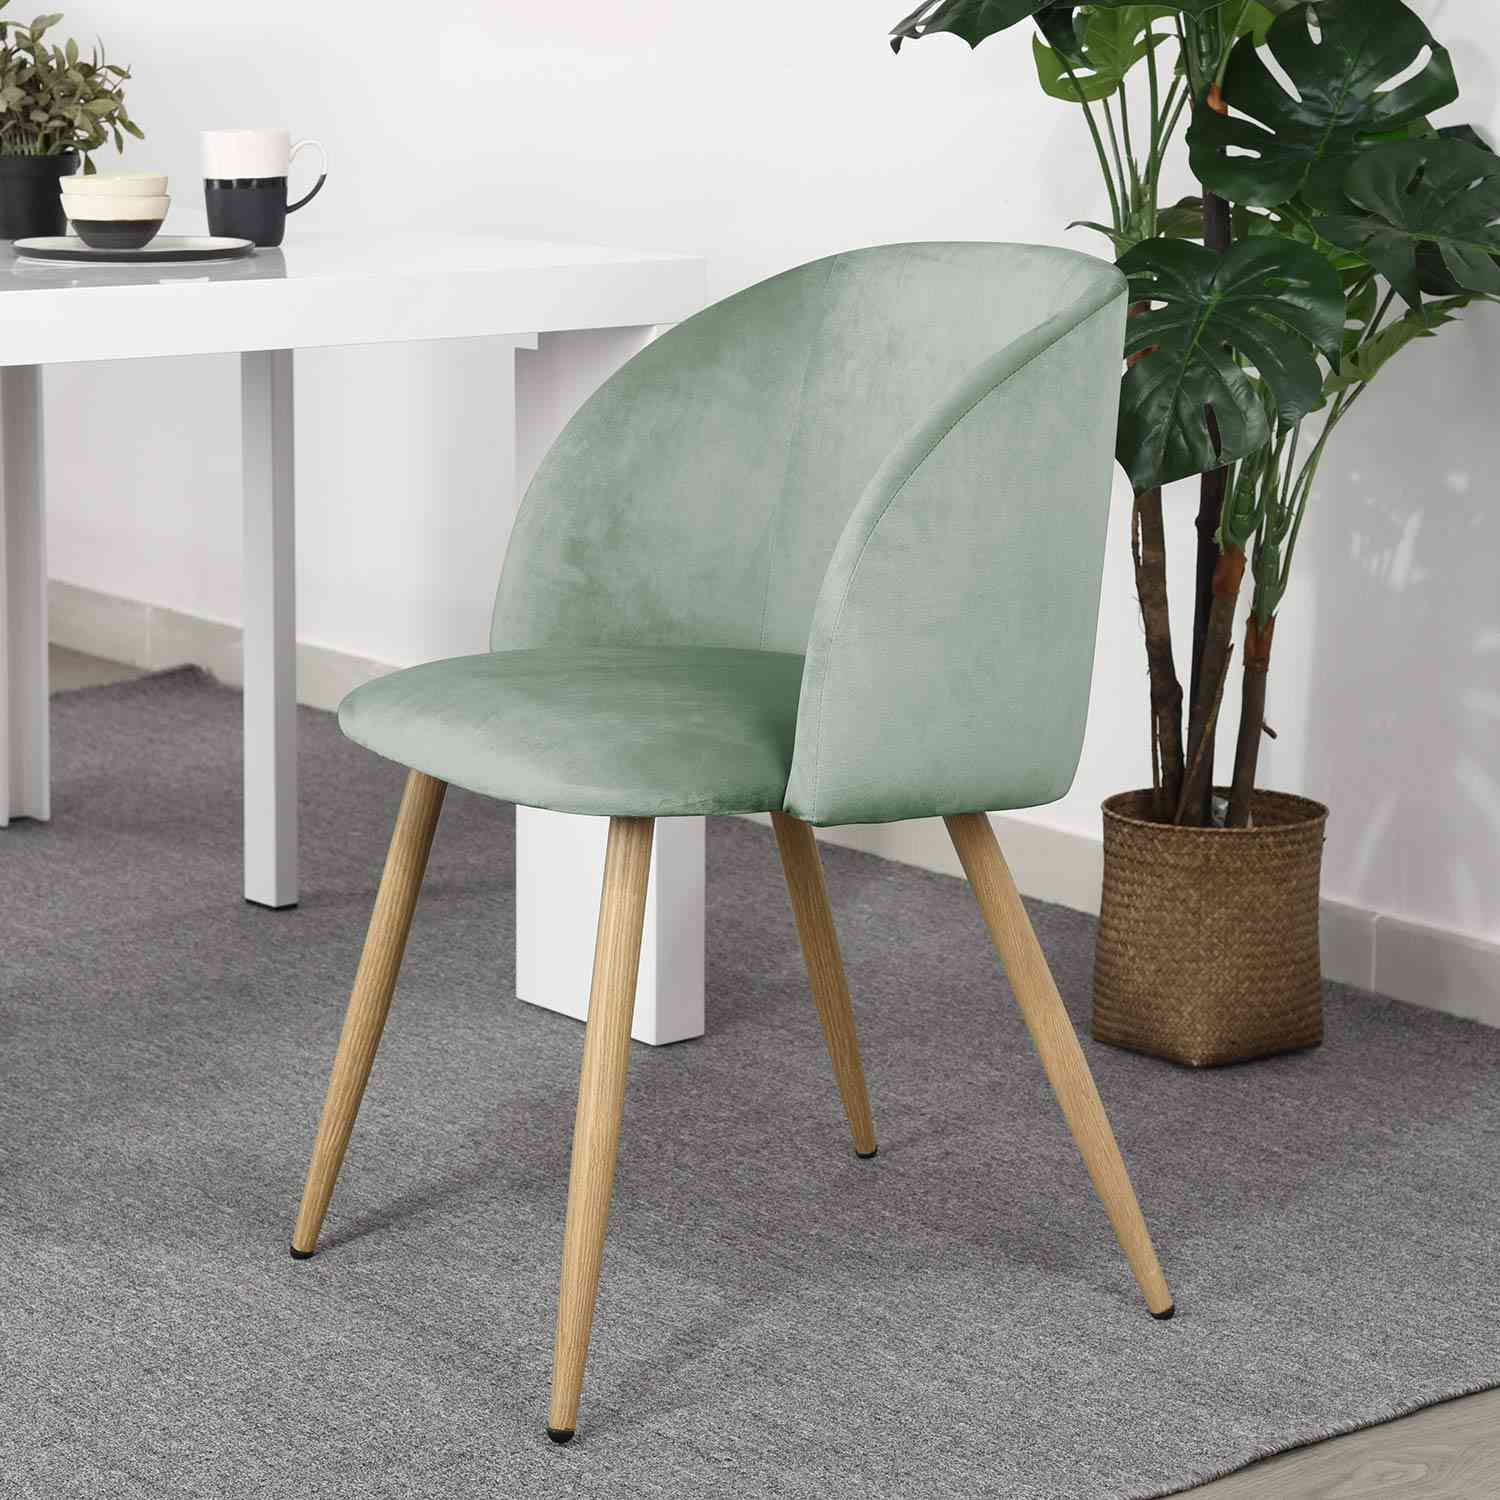 A green velvet dining chair with wooden legs on a gray rug.